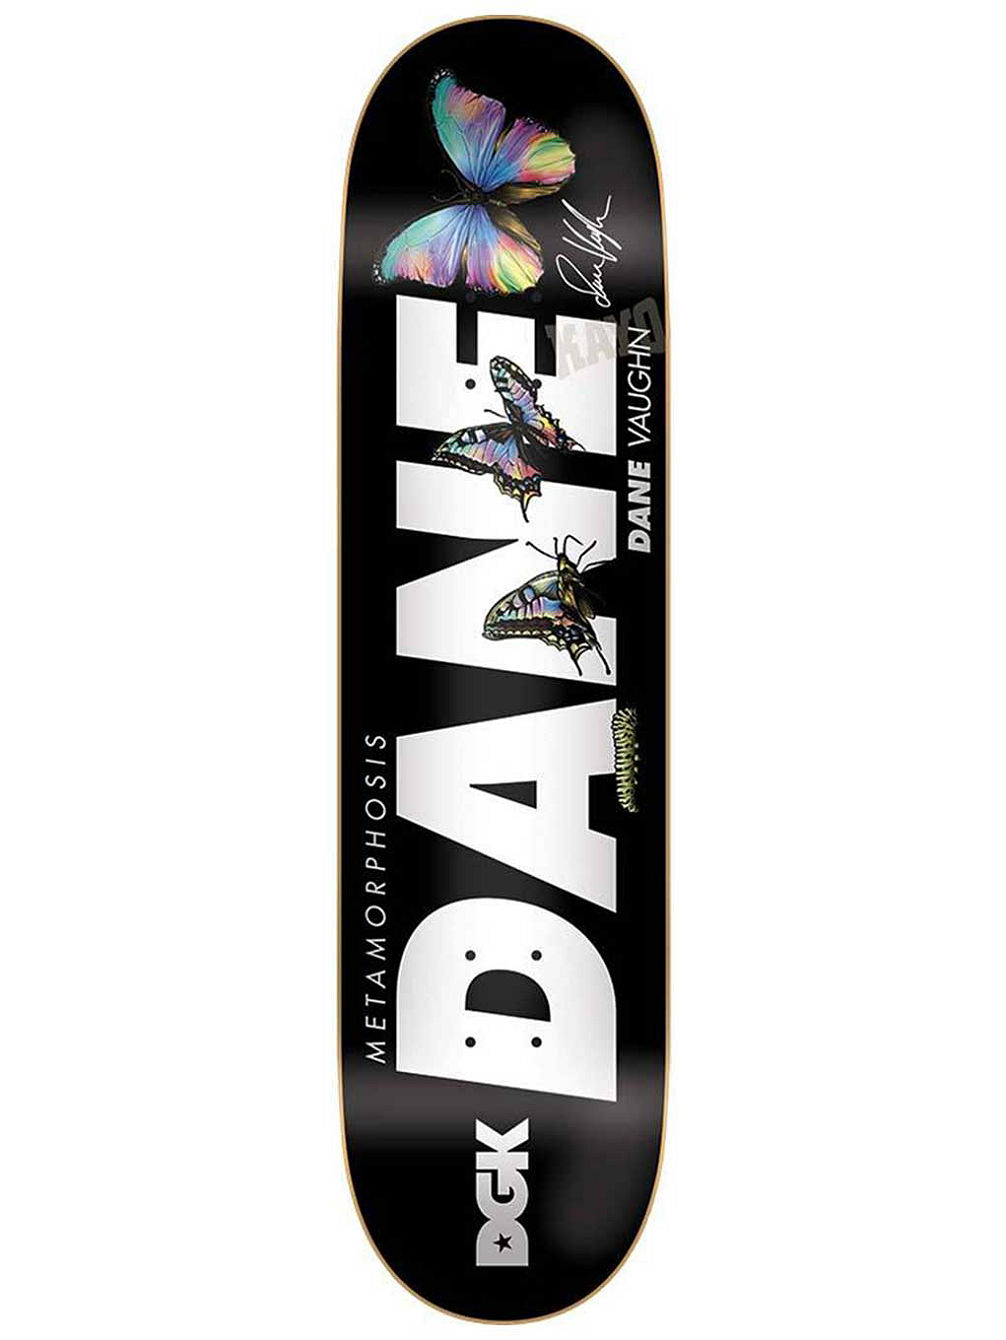 Dane Metamorphosis 8.06' Skateboard Deck